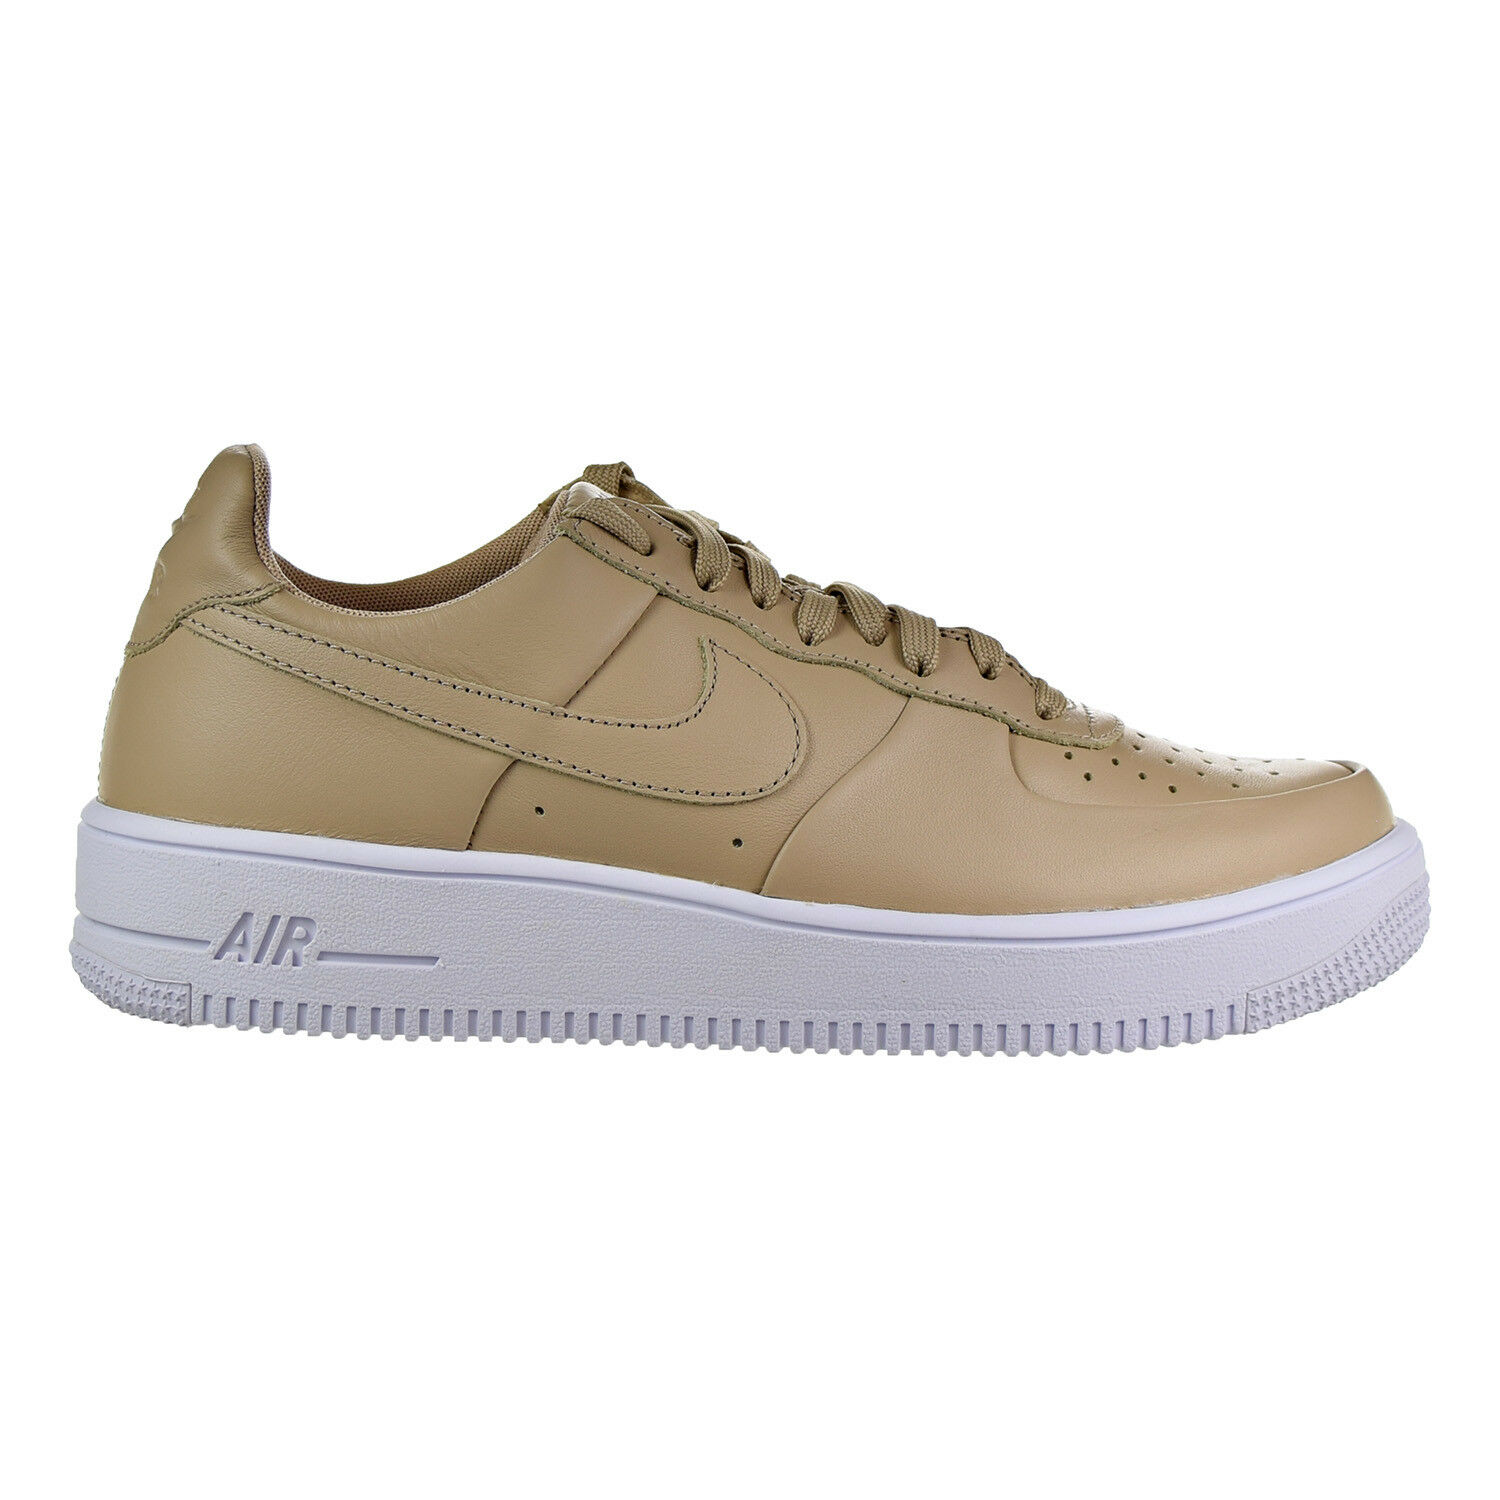 Nike Air Force 1 Ultraforce LTHR Men's Shoes Linen/Linen/White 845052-200